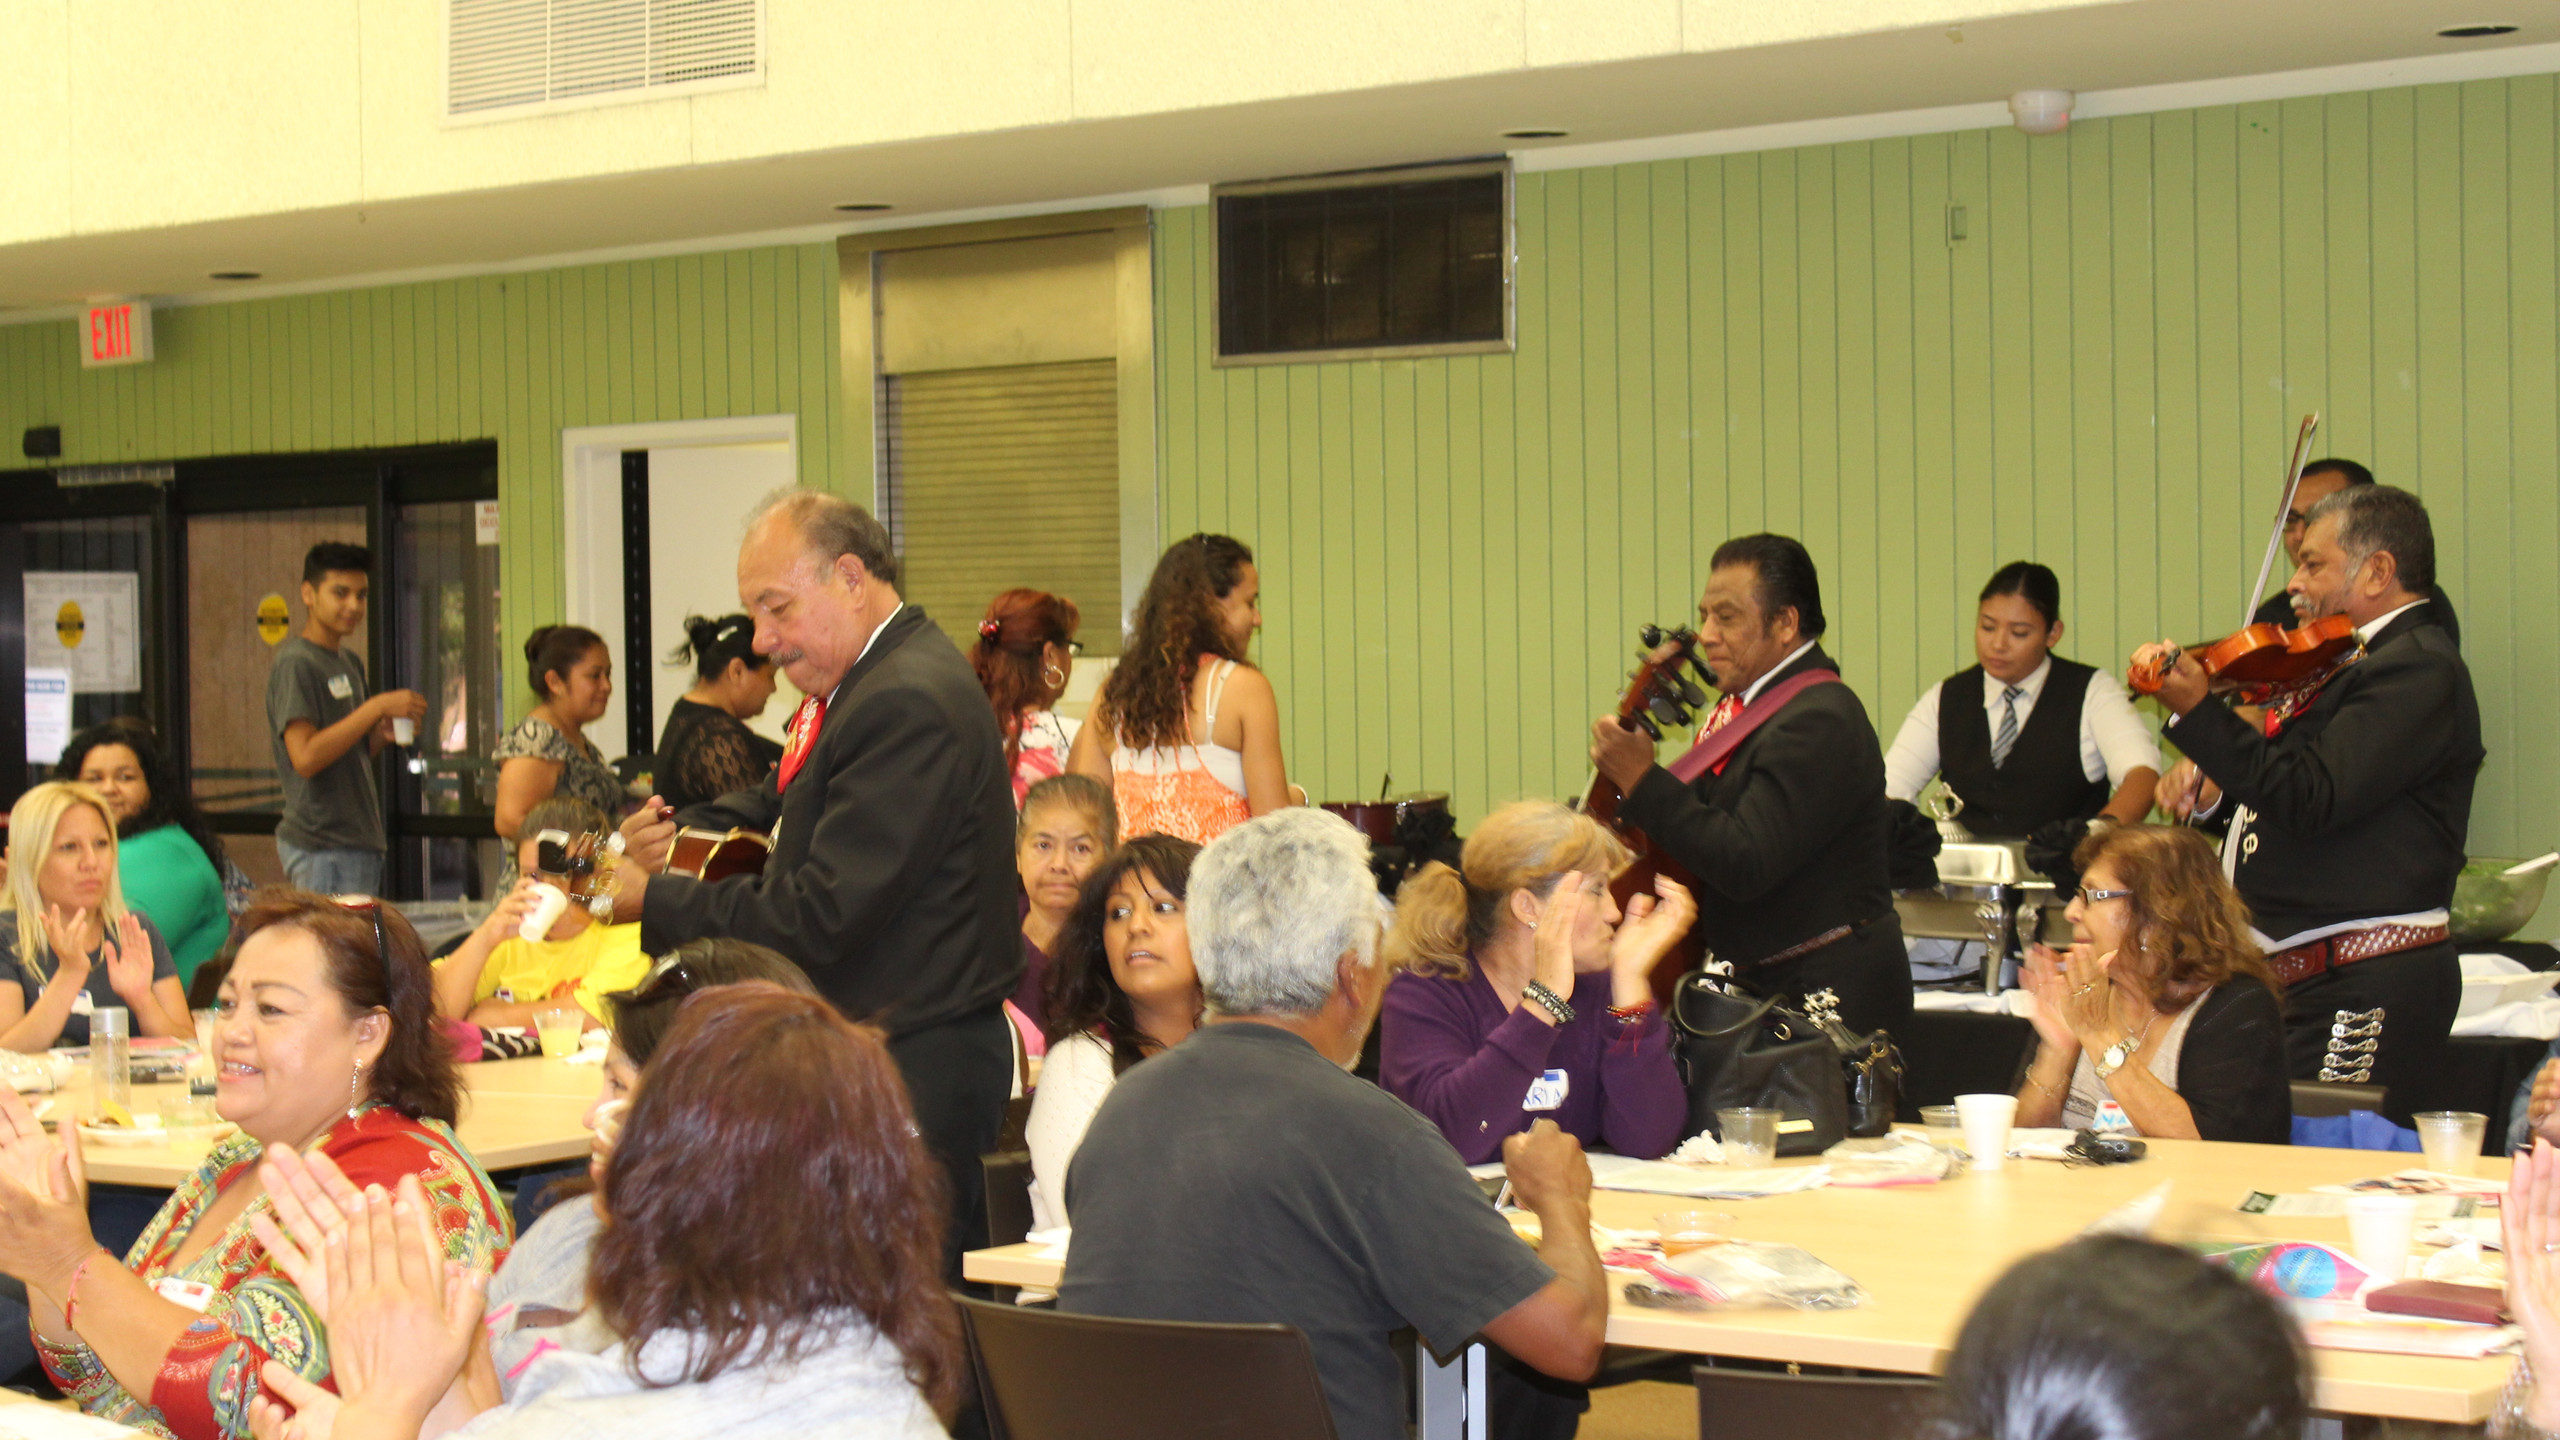 East LA and Boyle heights residents Celebrating the Launch of the East L.A.  Resource Guide.